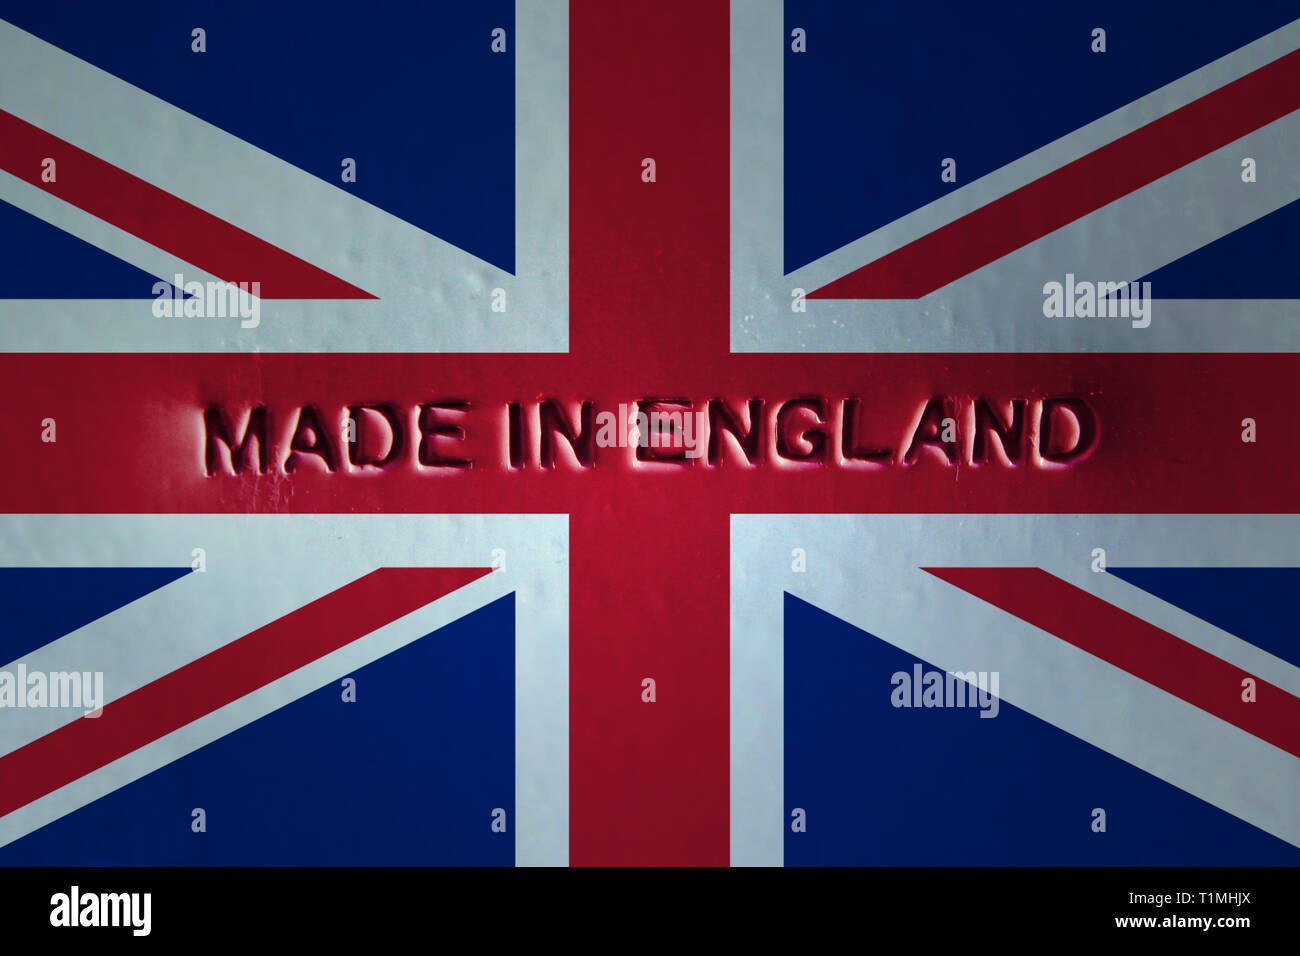 Made in England engraved in metal sheet flag, close-up - Stock Image